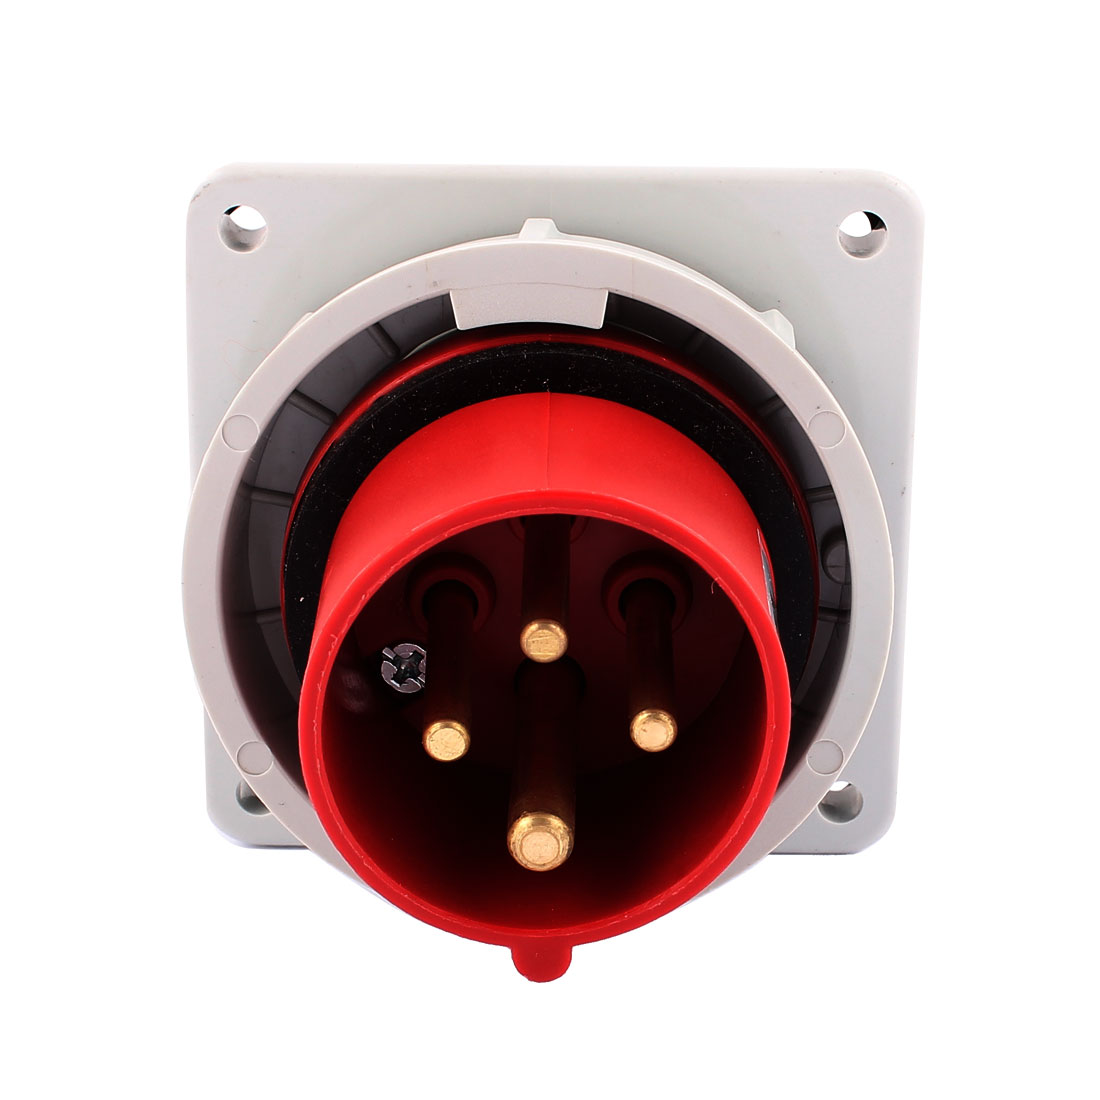 AC 380V-415V 16A IP67 3P+E 4 Terminal Male Industrial Panel Mounting Plug